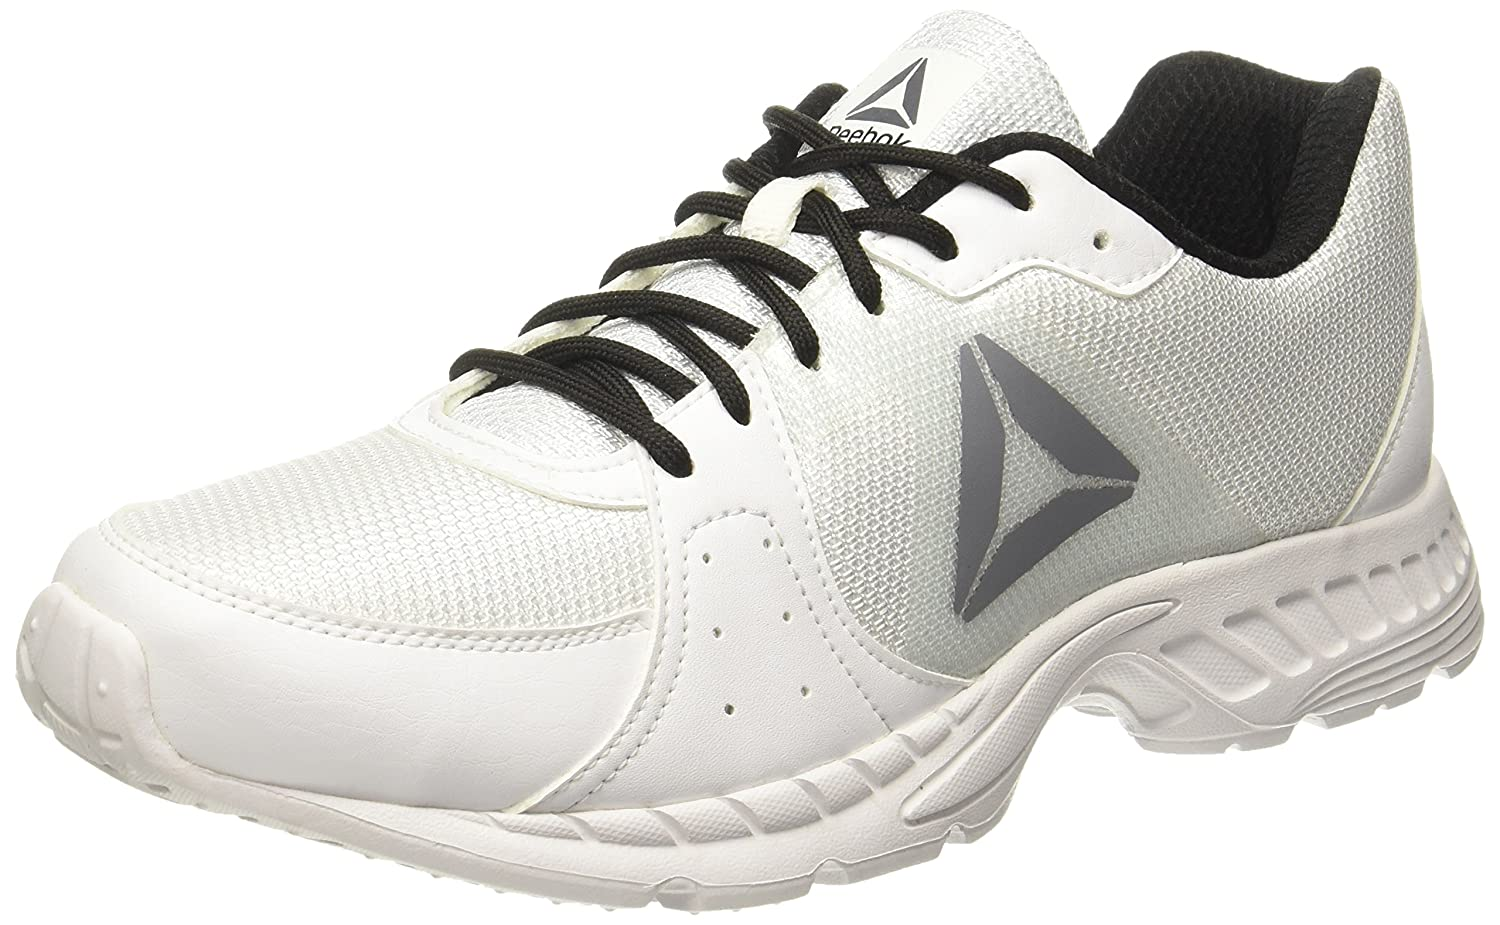 Top Speed Xtreme Wht/Blk Running Shoes